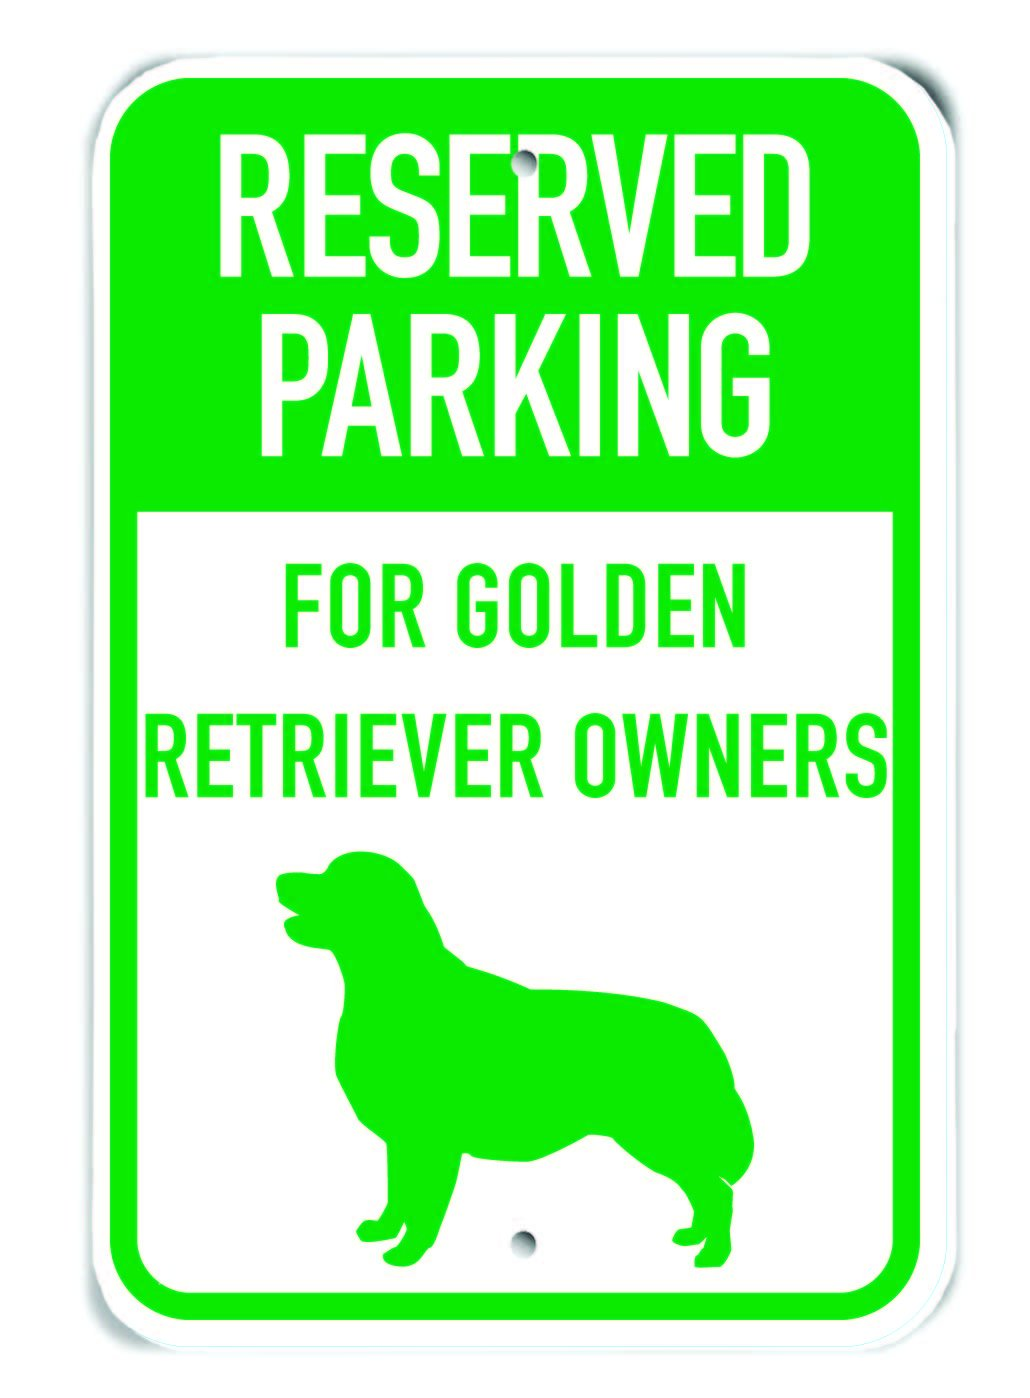 G//W Aluminum Sign Silhouette Golden Retriever 12 x 18 PetKa Signs and Graphics PKRP-0012-NA/_12x18Reserved Parking for Golden Retriever Owners